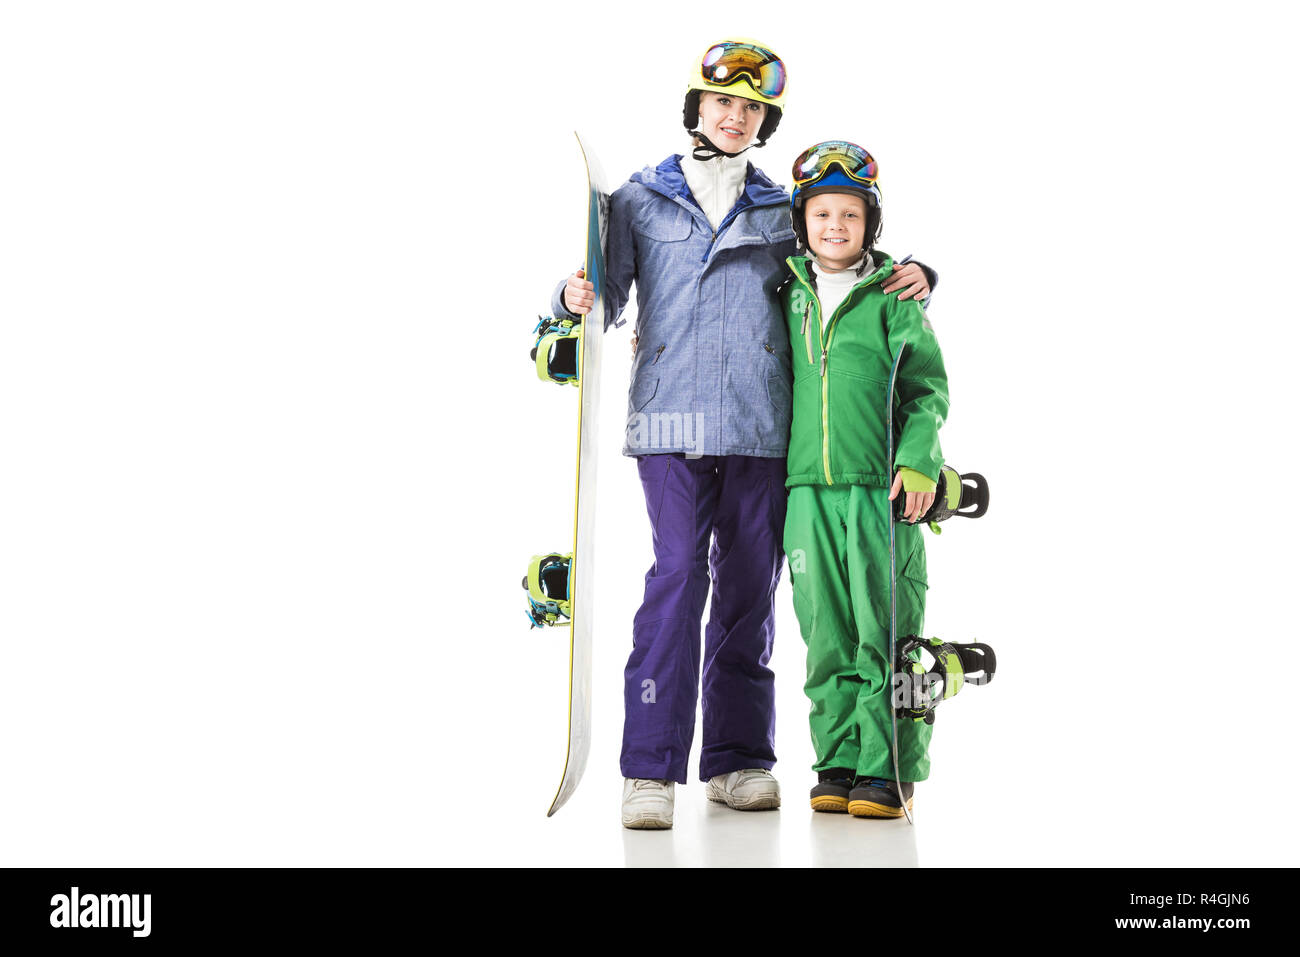 young mom and preteen son in ski suits with snowboards hugging isolated on white - Stock Image